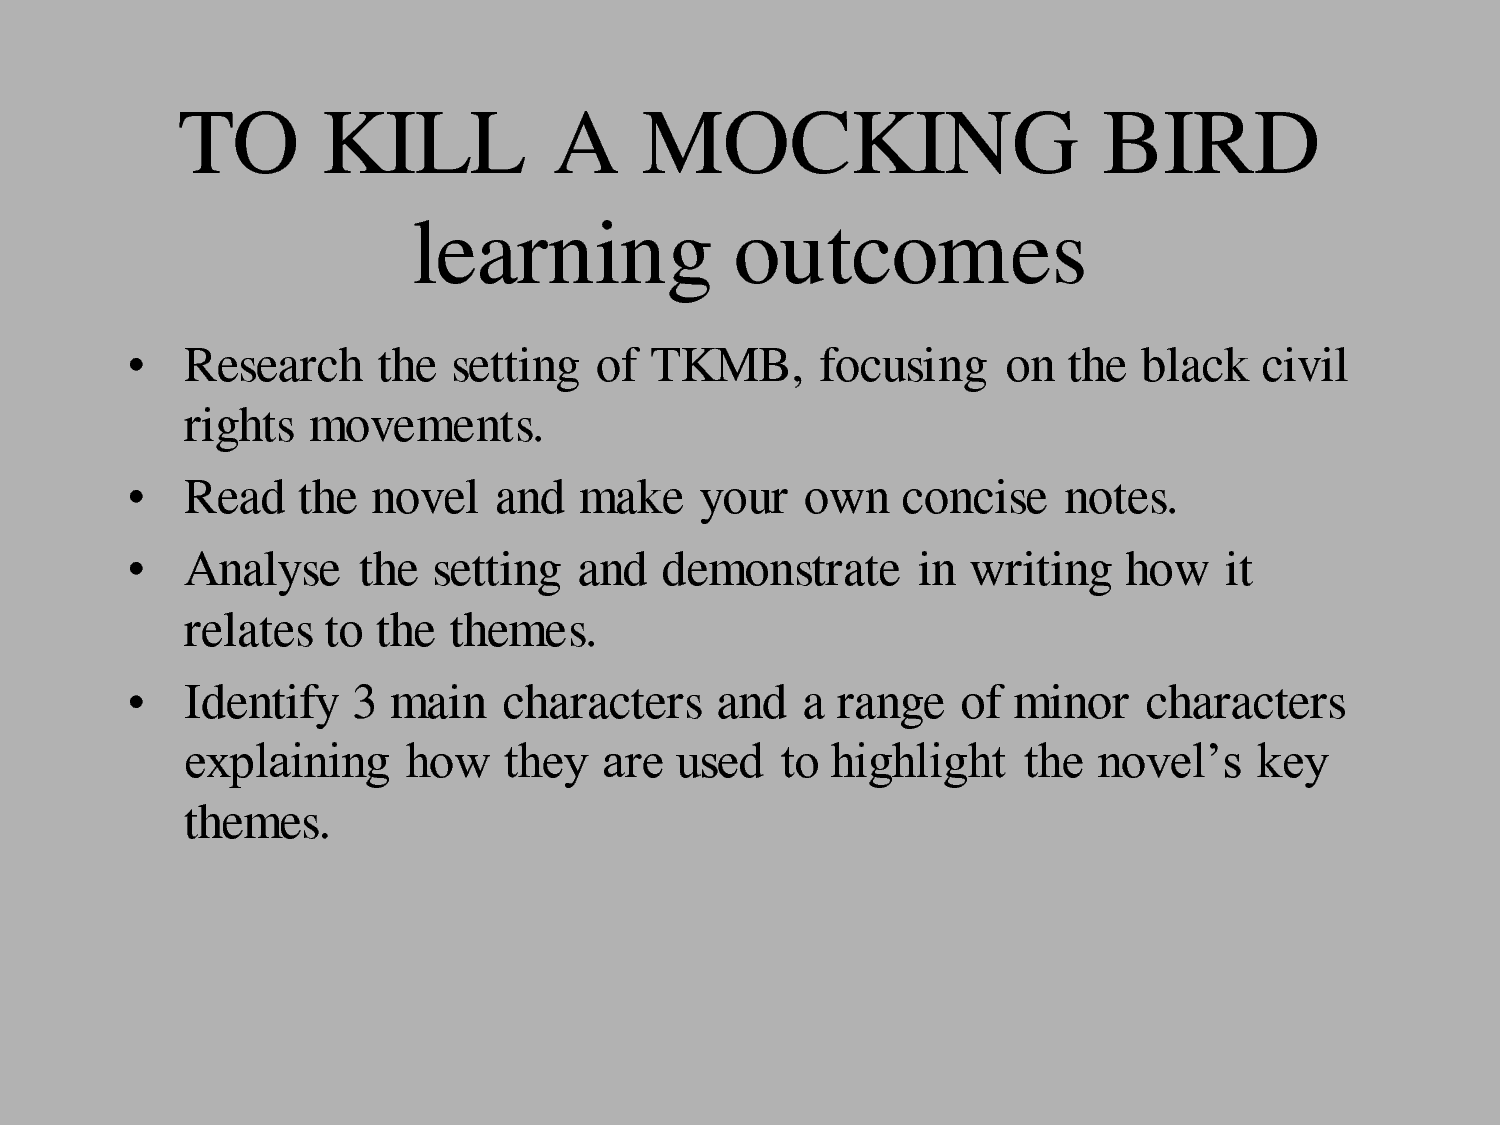 to-kill-a-mockingbird-quotes-12